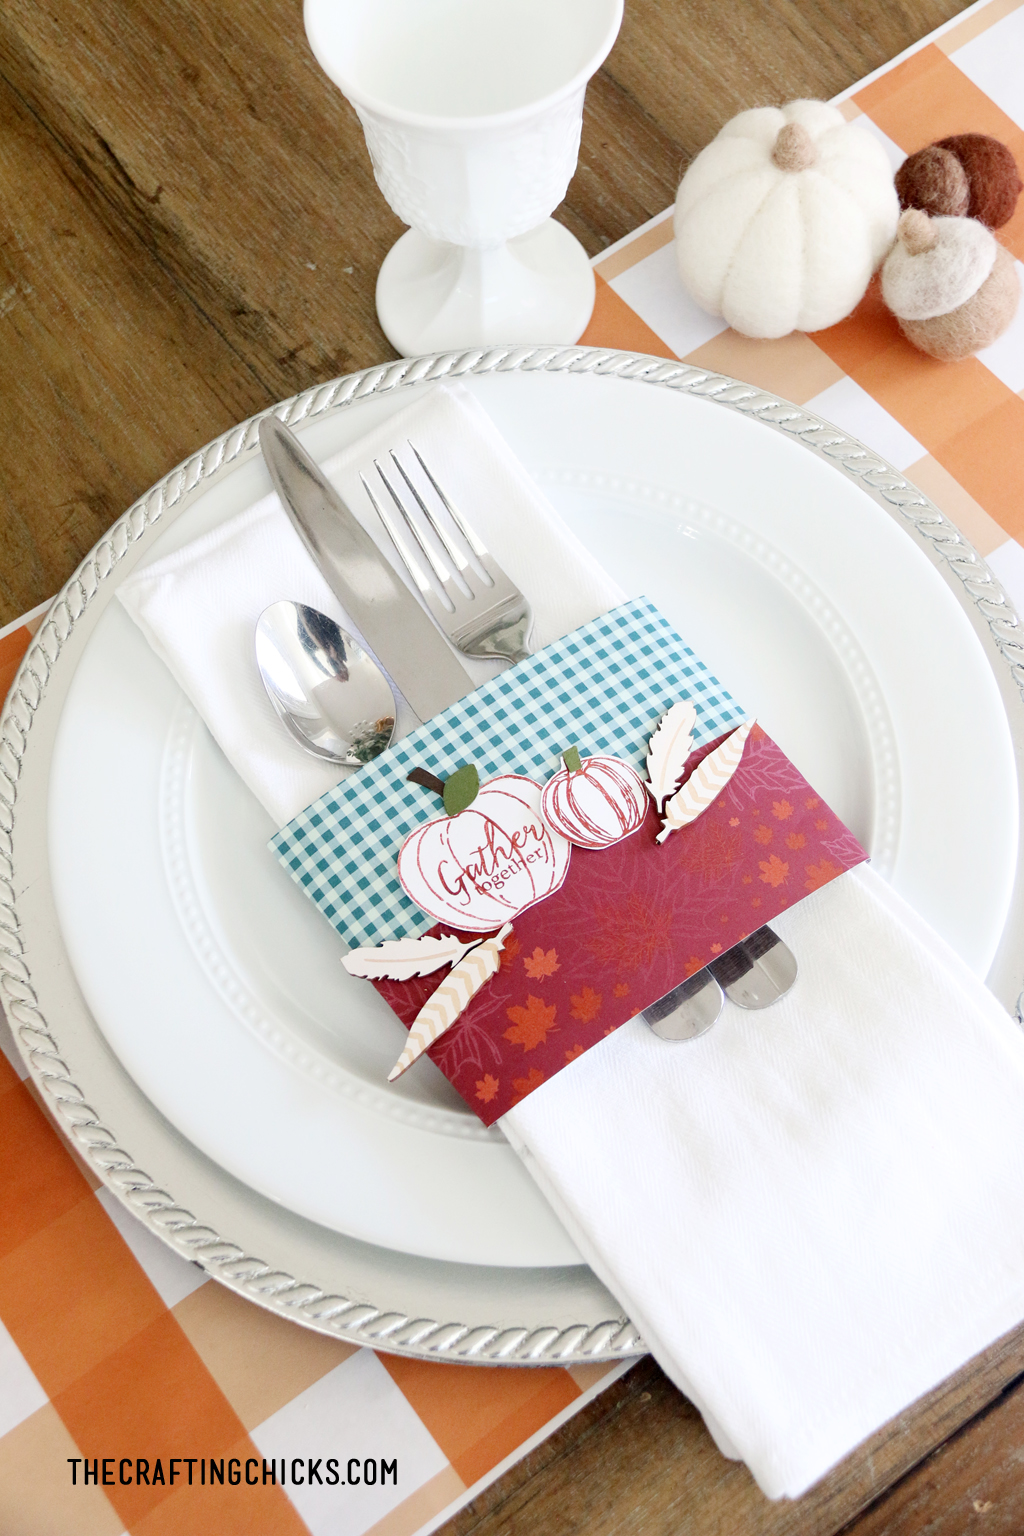 Easy Thanksgiving place setting with orange plaid place mat, white plate, and stamped napkin ring with pumpkins.